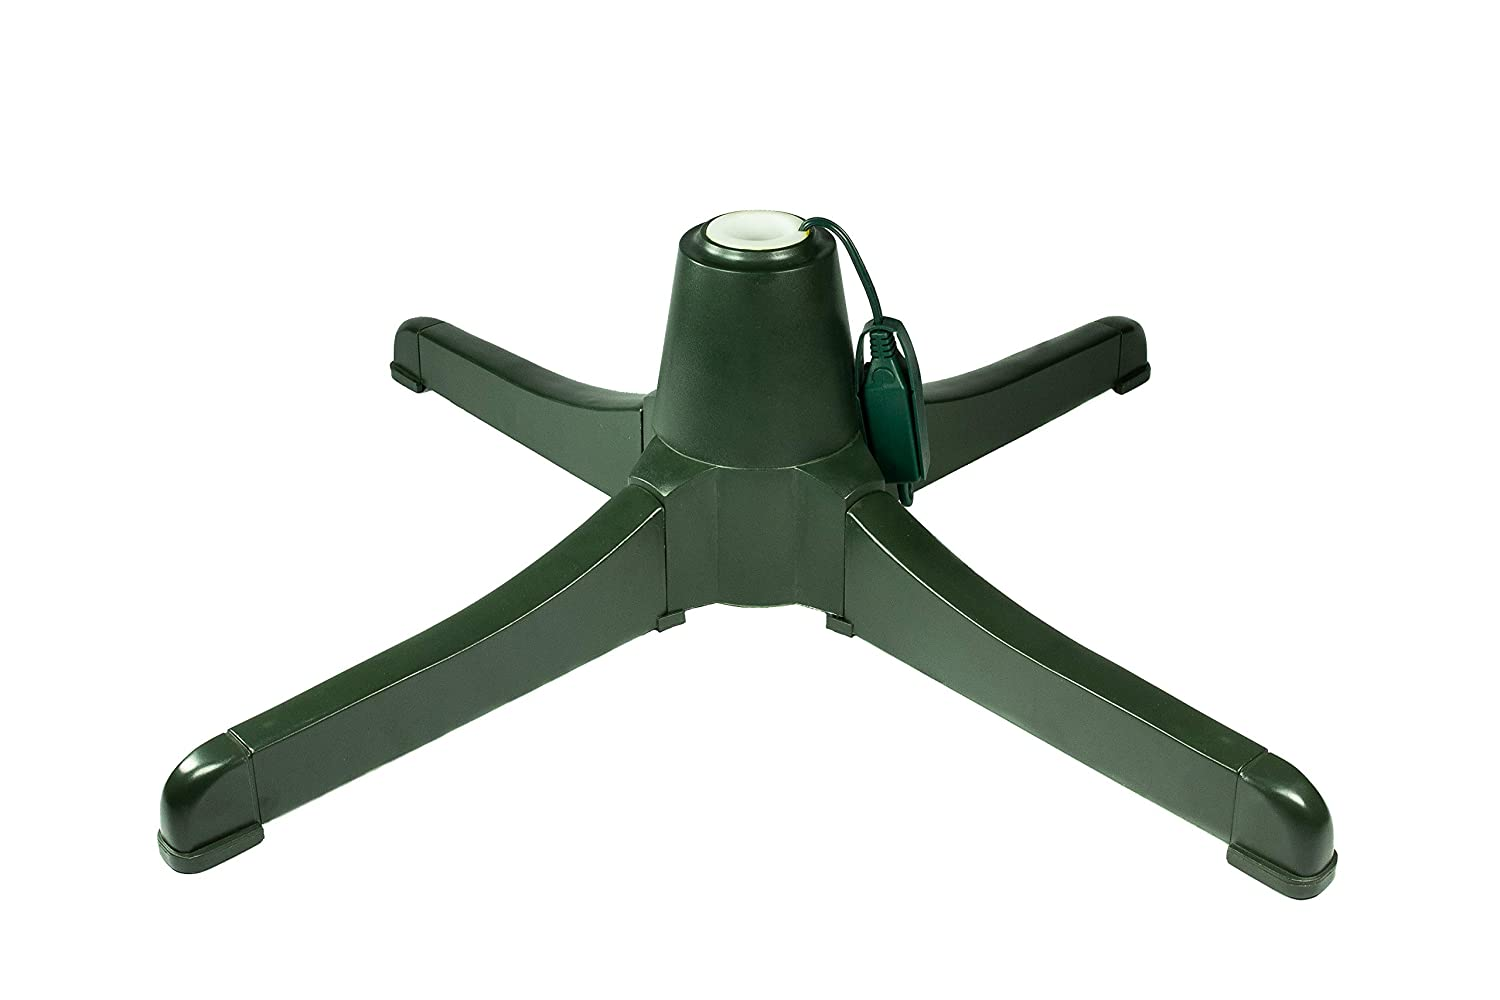 Artificial Christmas Tree Stand.Winter Wonder Rotating Christmas Tree Stand For Artificial Trees